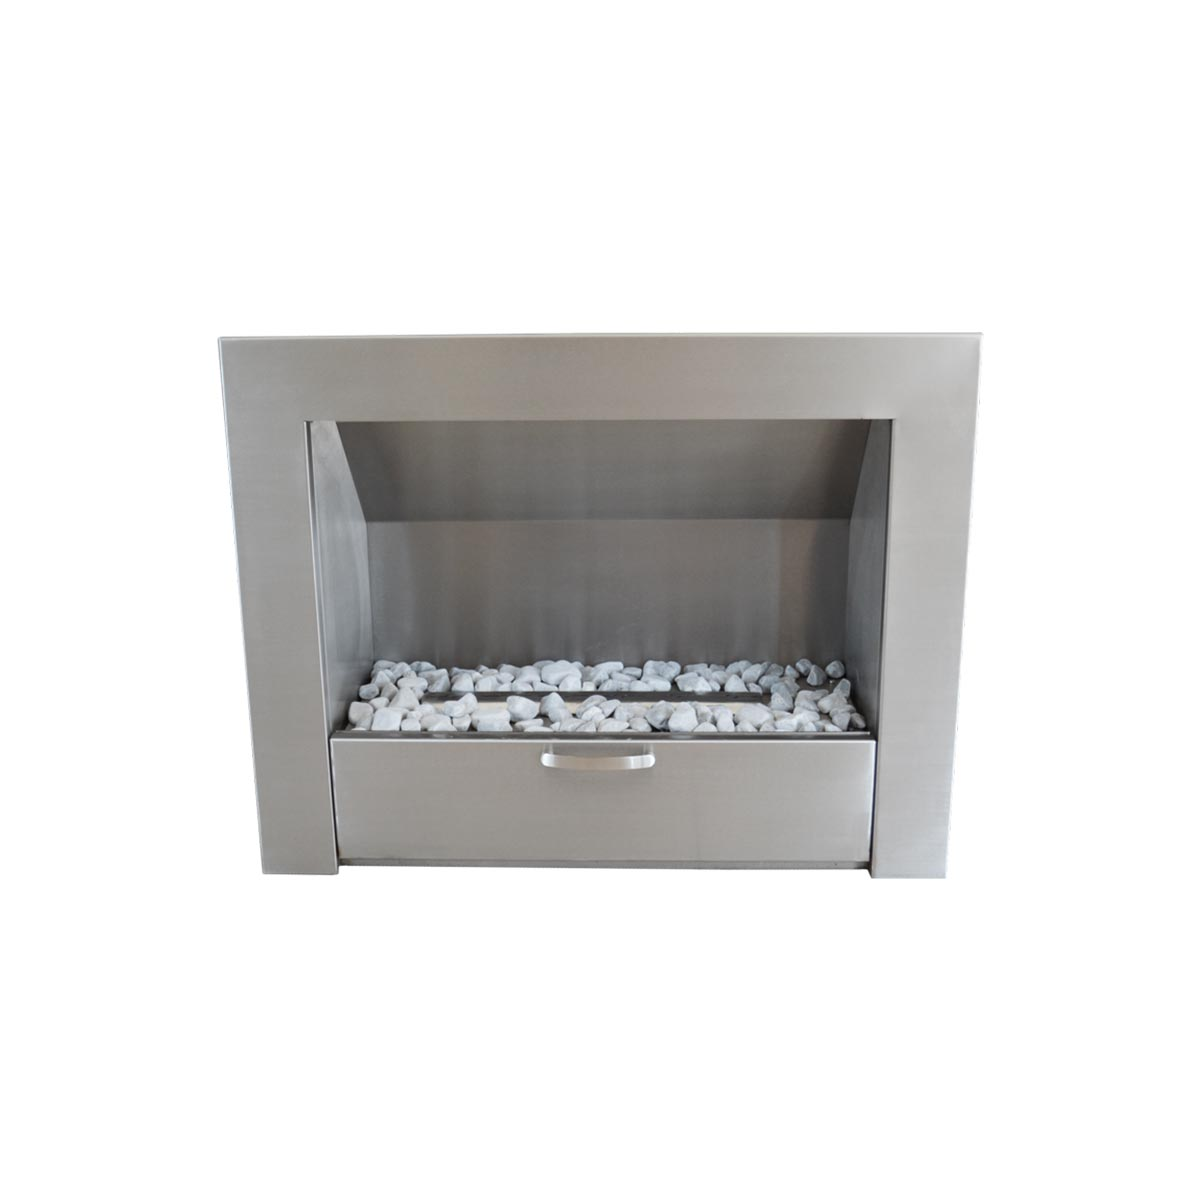 Stainless Steel Fireplace Megamaster Gas 900 Vent Free Stainless Steel Fireplace